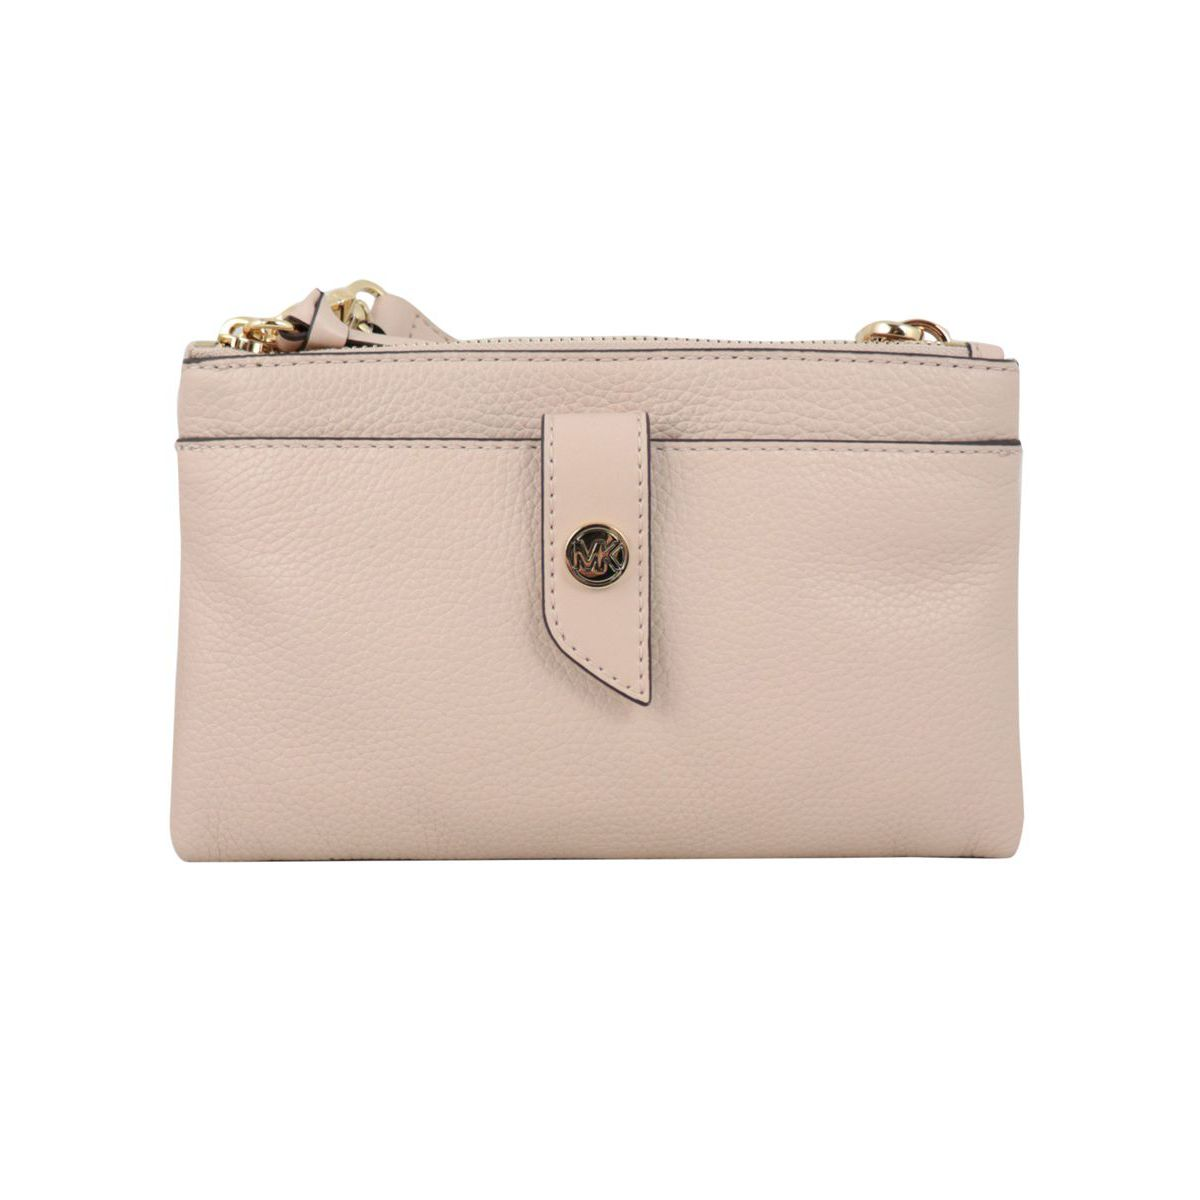 Small leather bag with double zip pockets Dusty pink Michael Kors